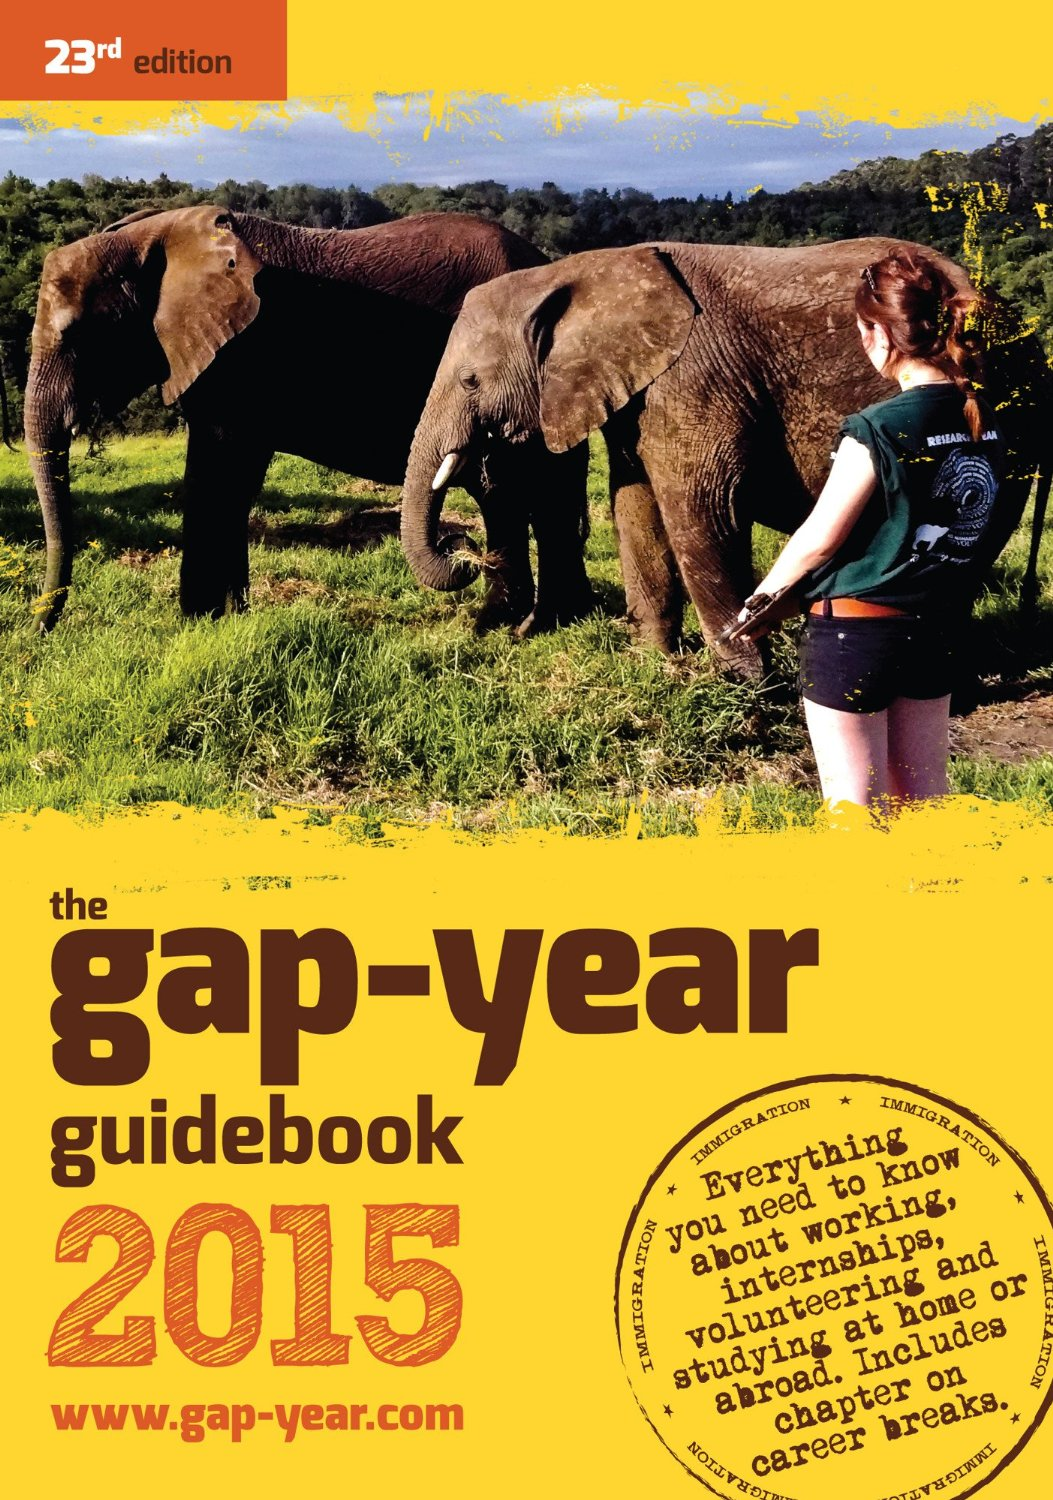 The Gap-Year Guidebook 2015 free download